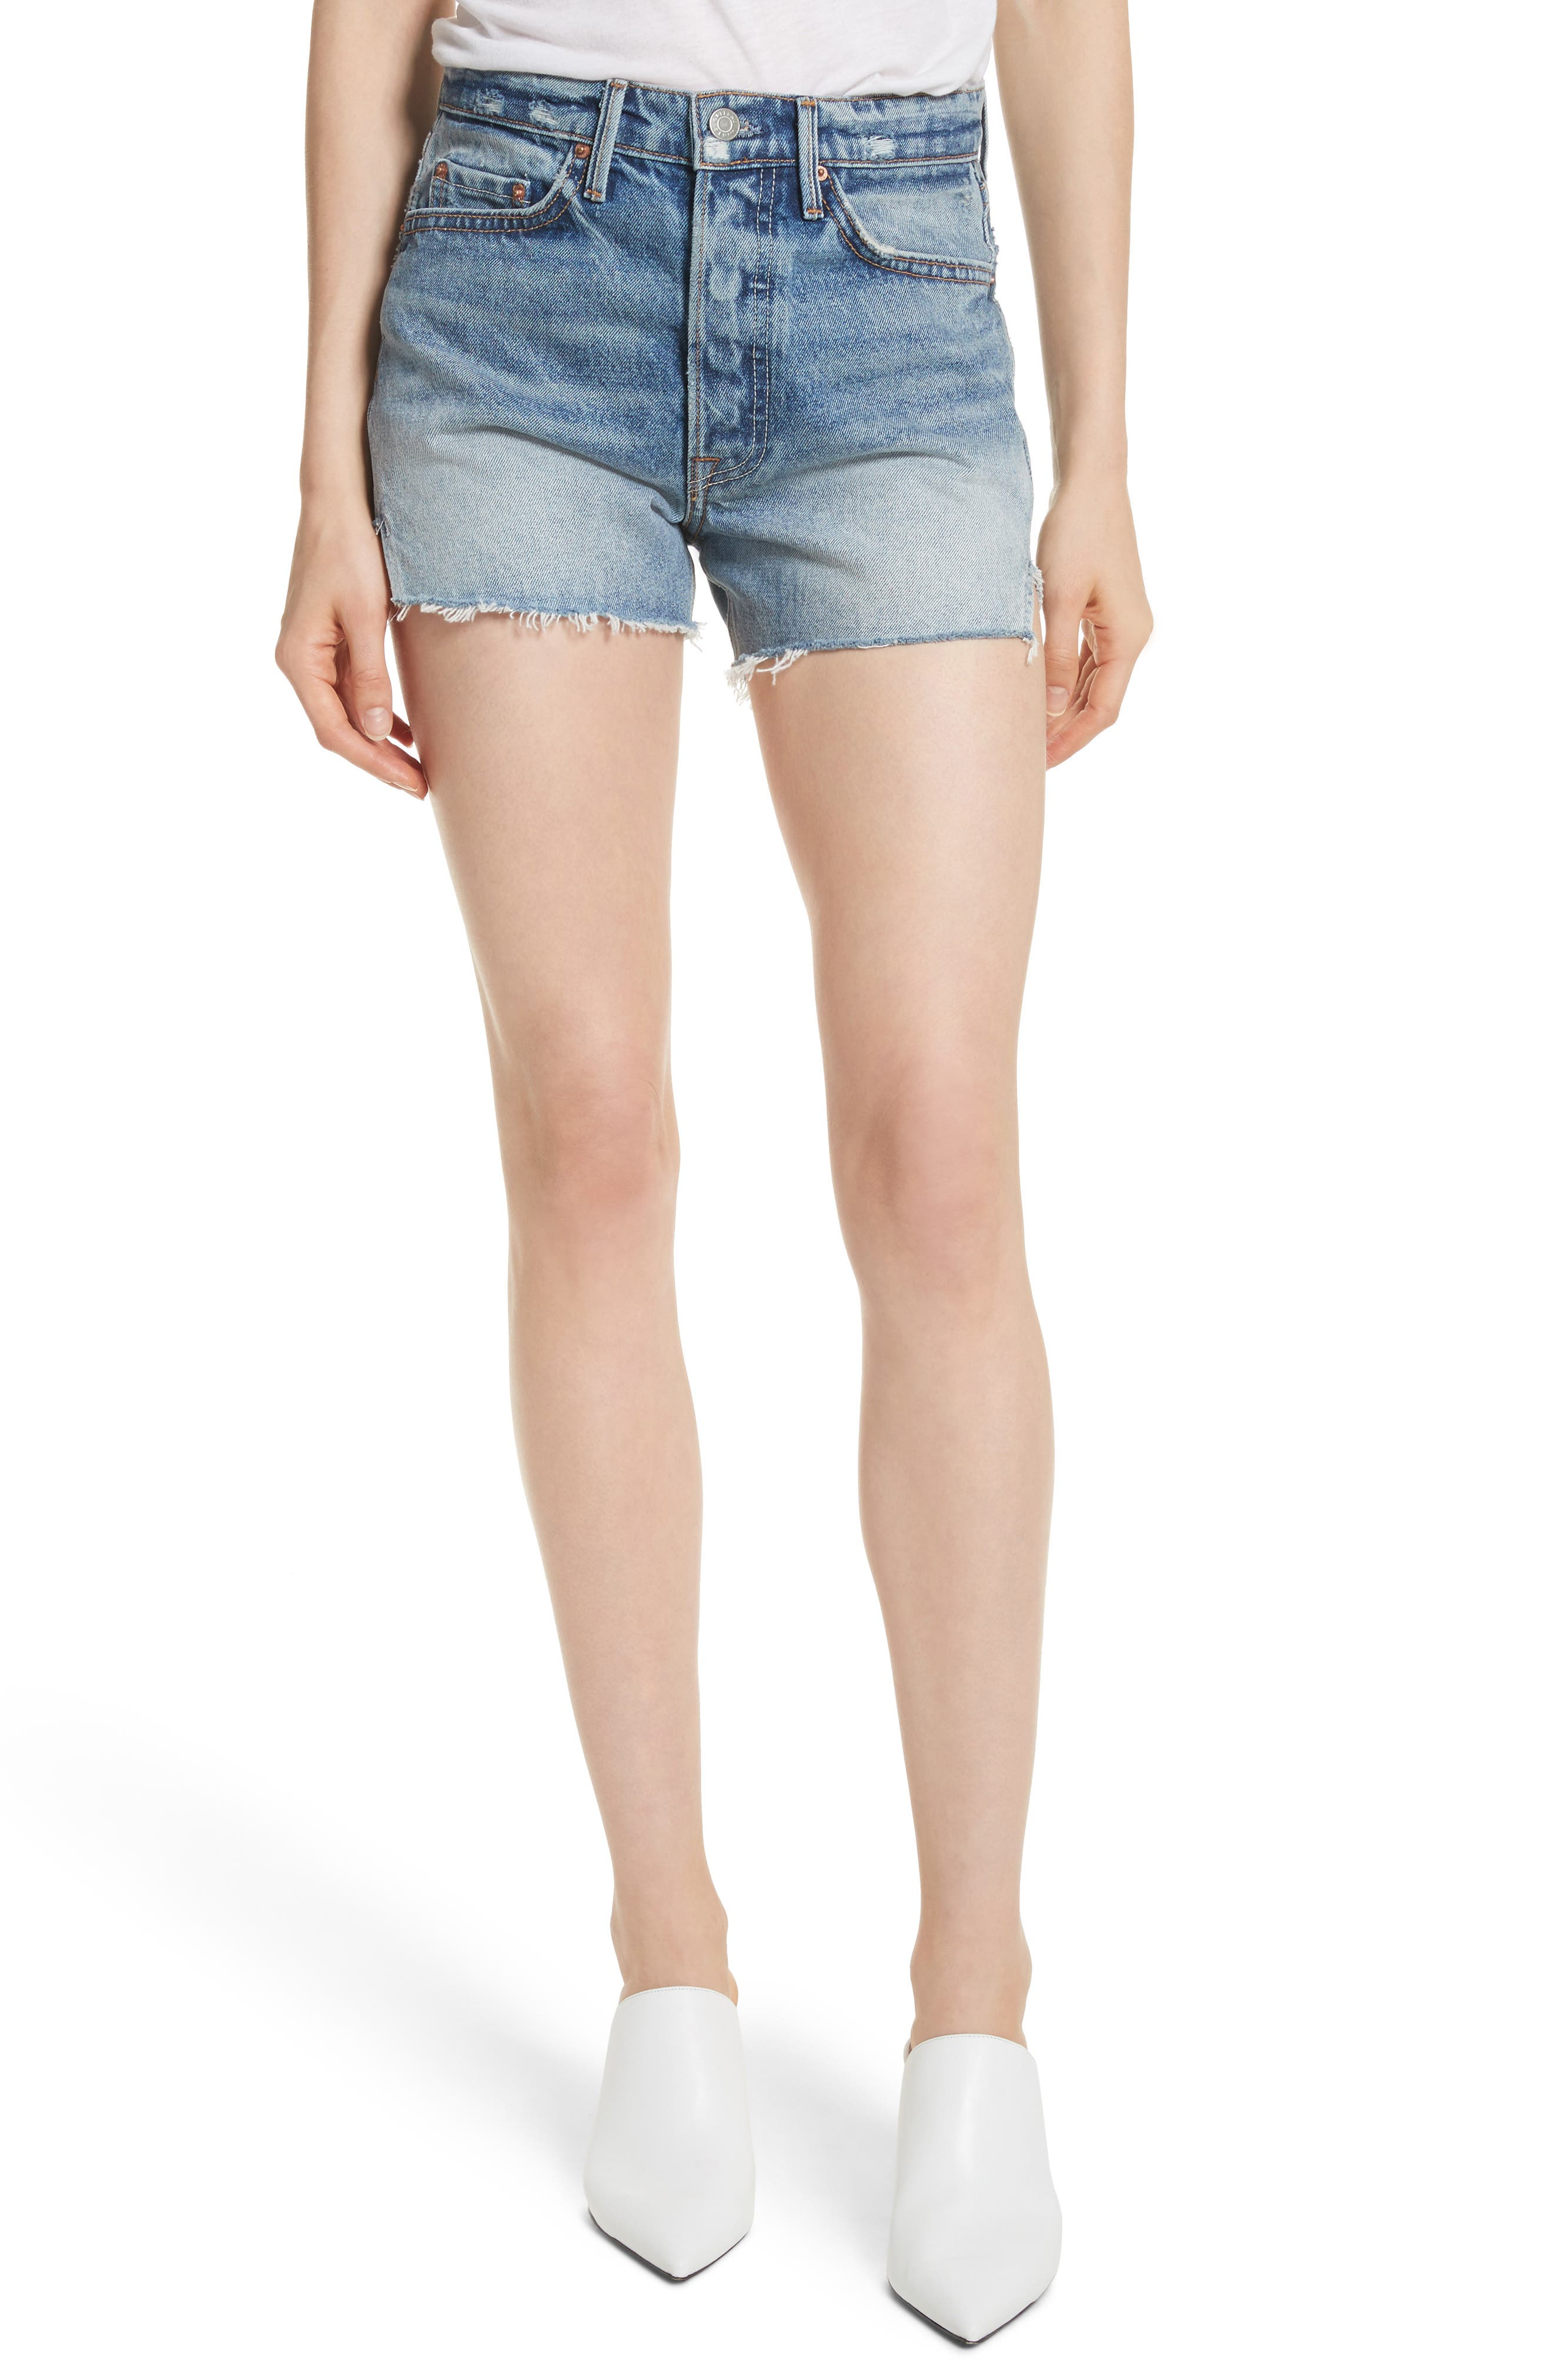 Mardee Denim Shorts,                             Main thumbnail 1, color,                             Twisted